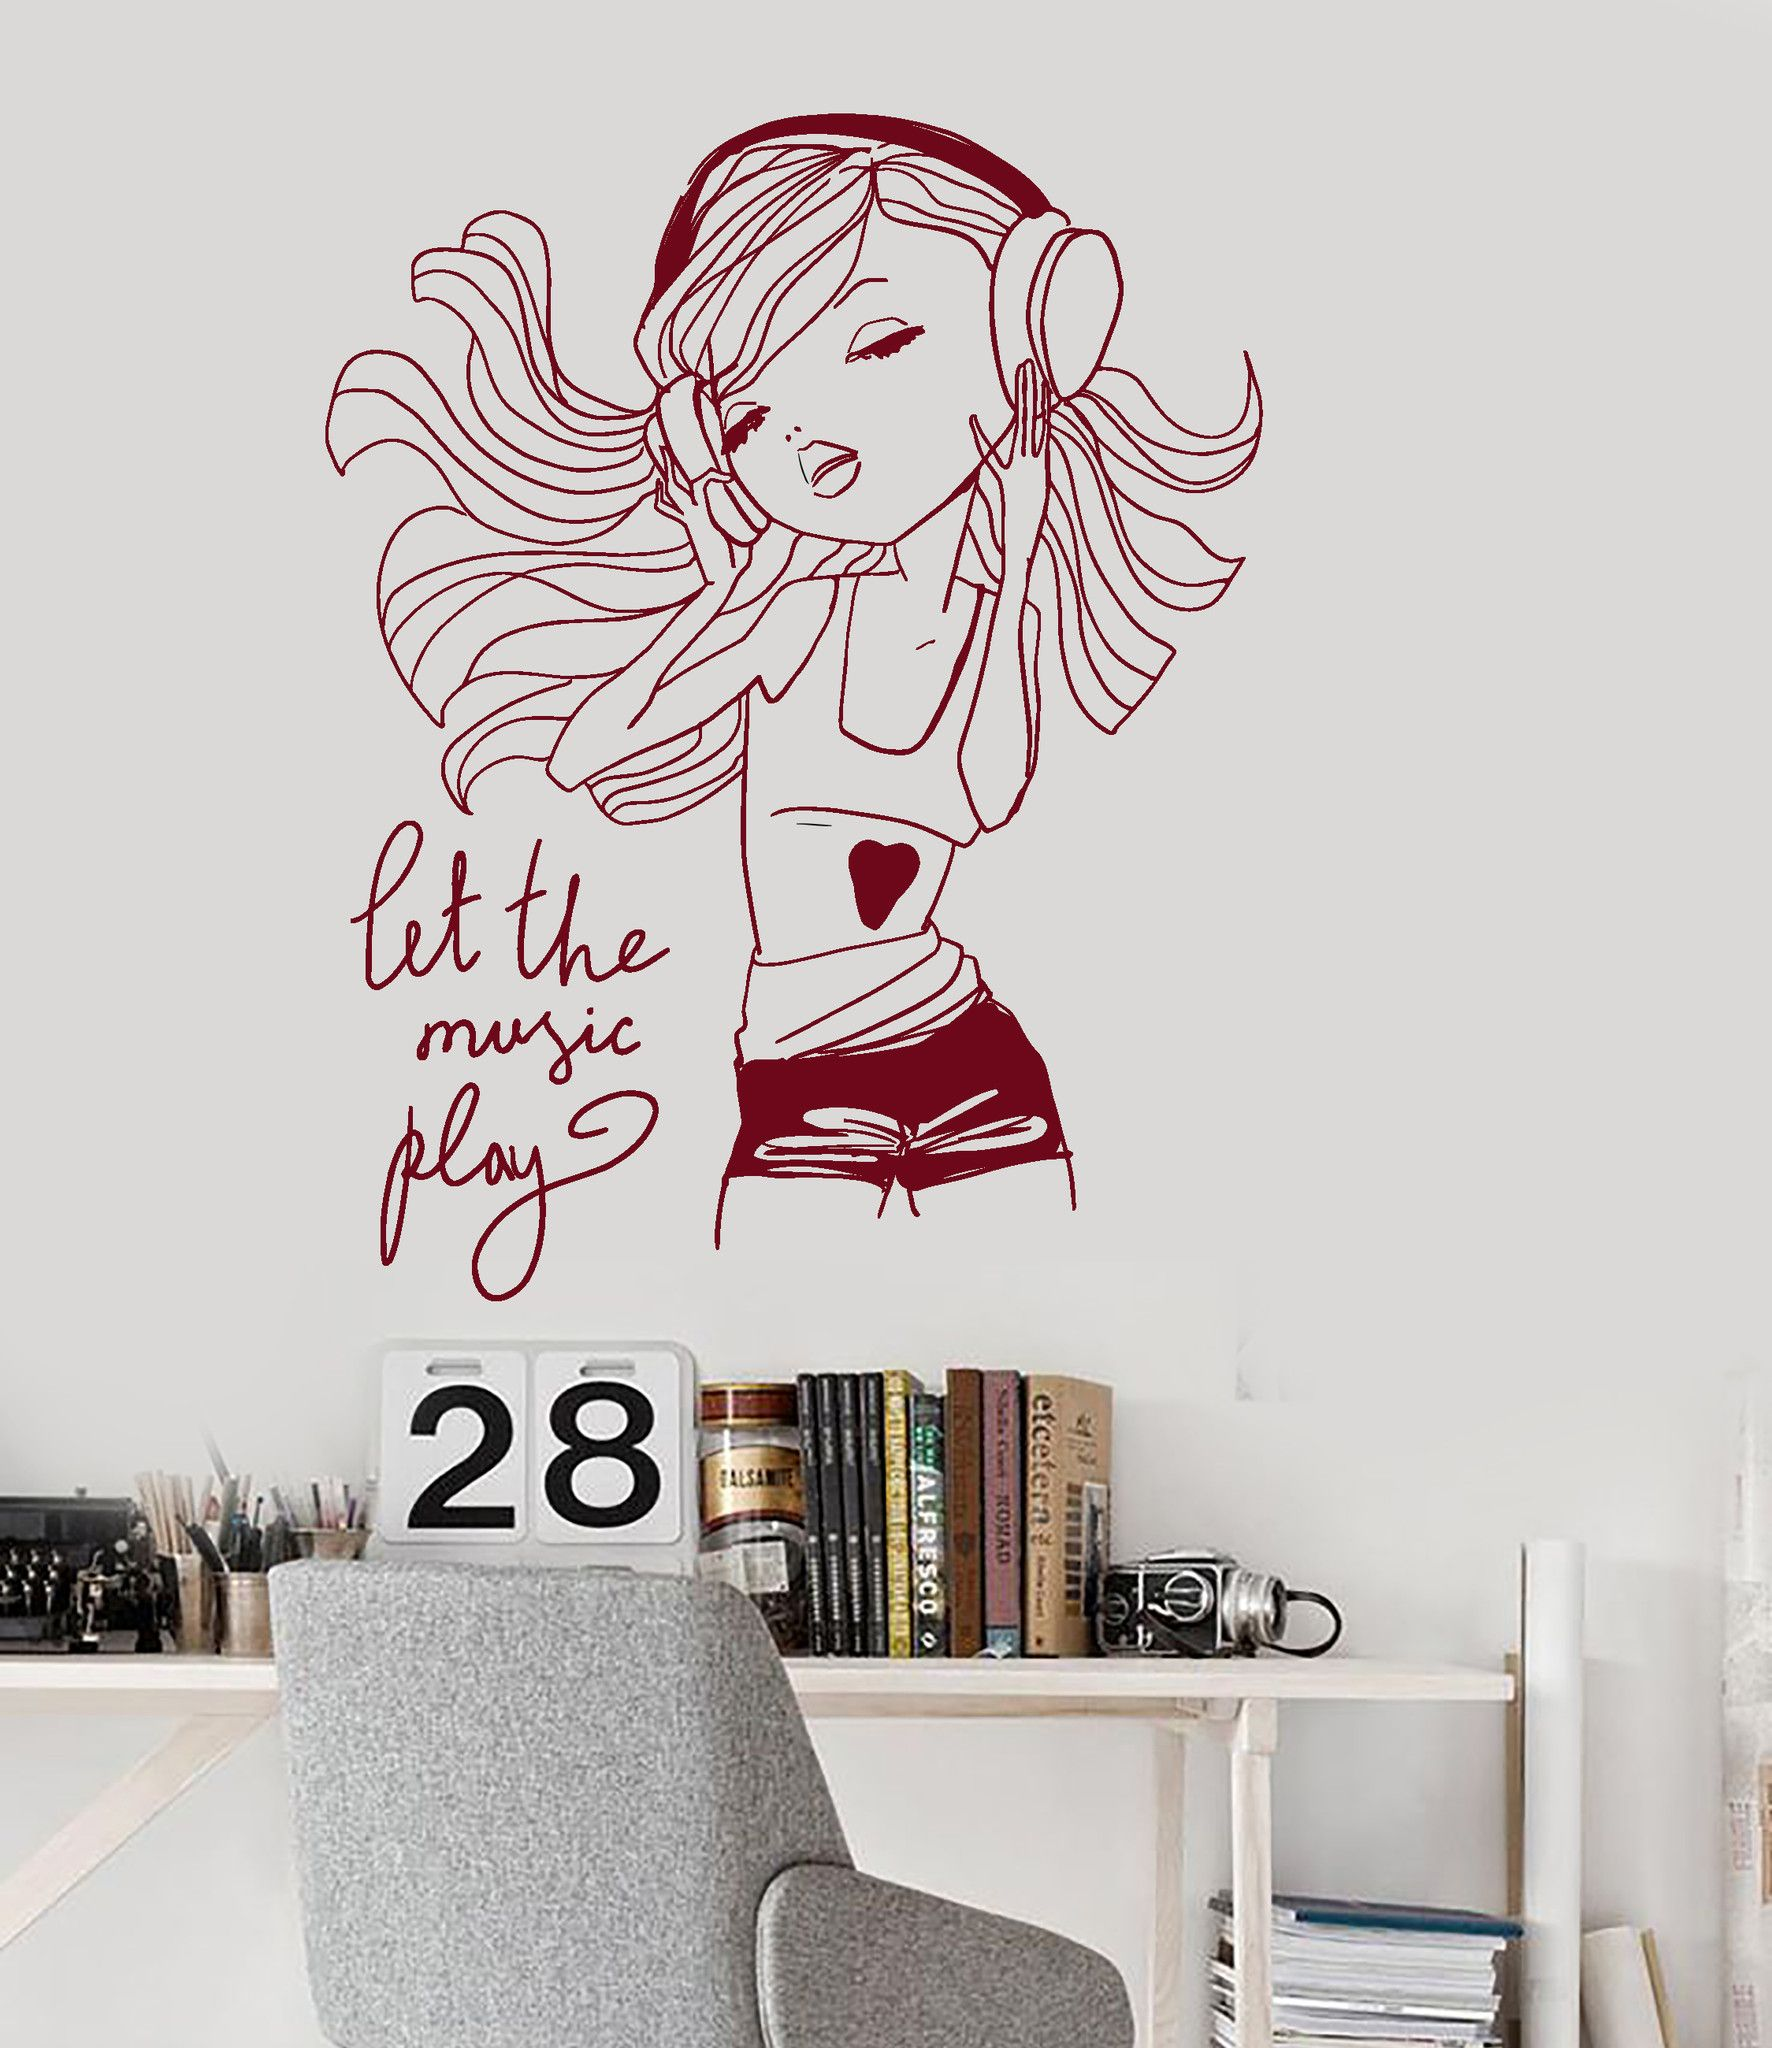 Beautiful Wall Vinyl Decal Teen Girl Music Headphones Room Decoration Art Stickersu2026